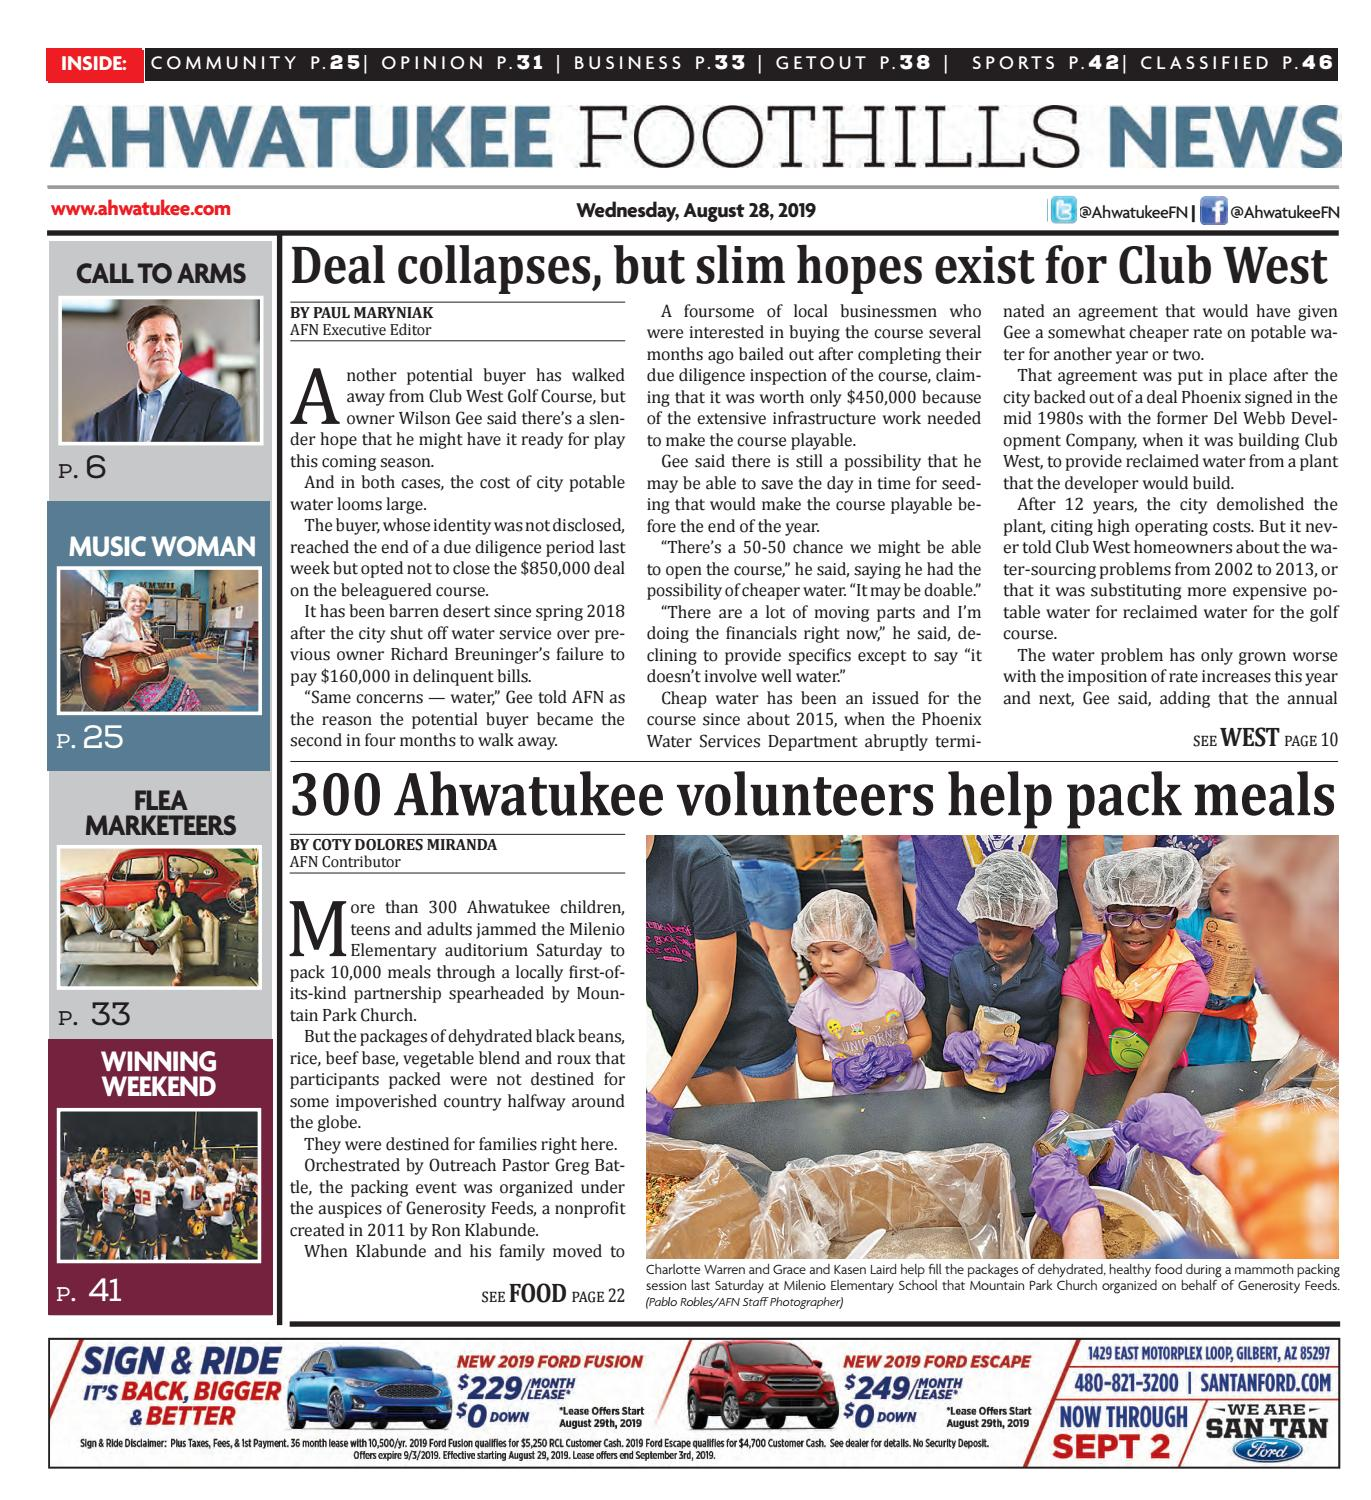 Ahwatukee Foothills News - August 28, 2019 by Times Media